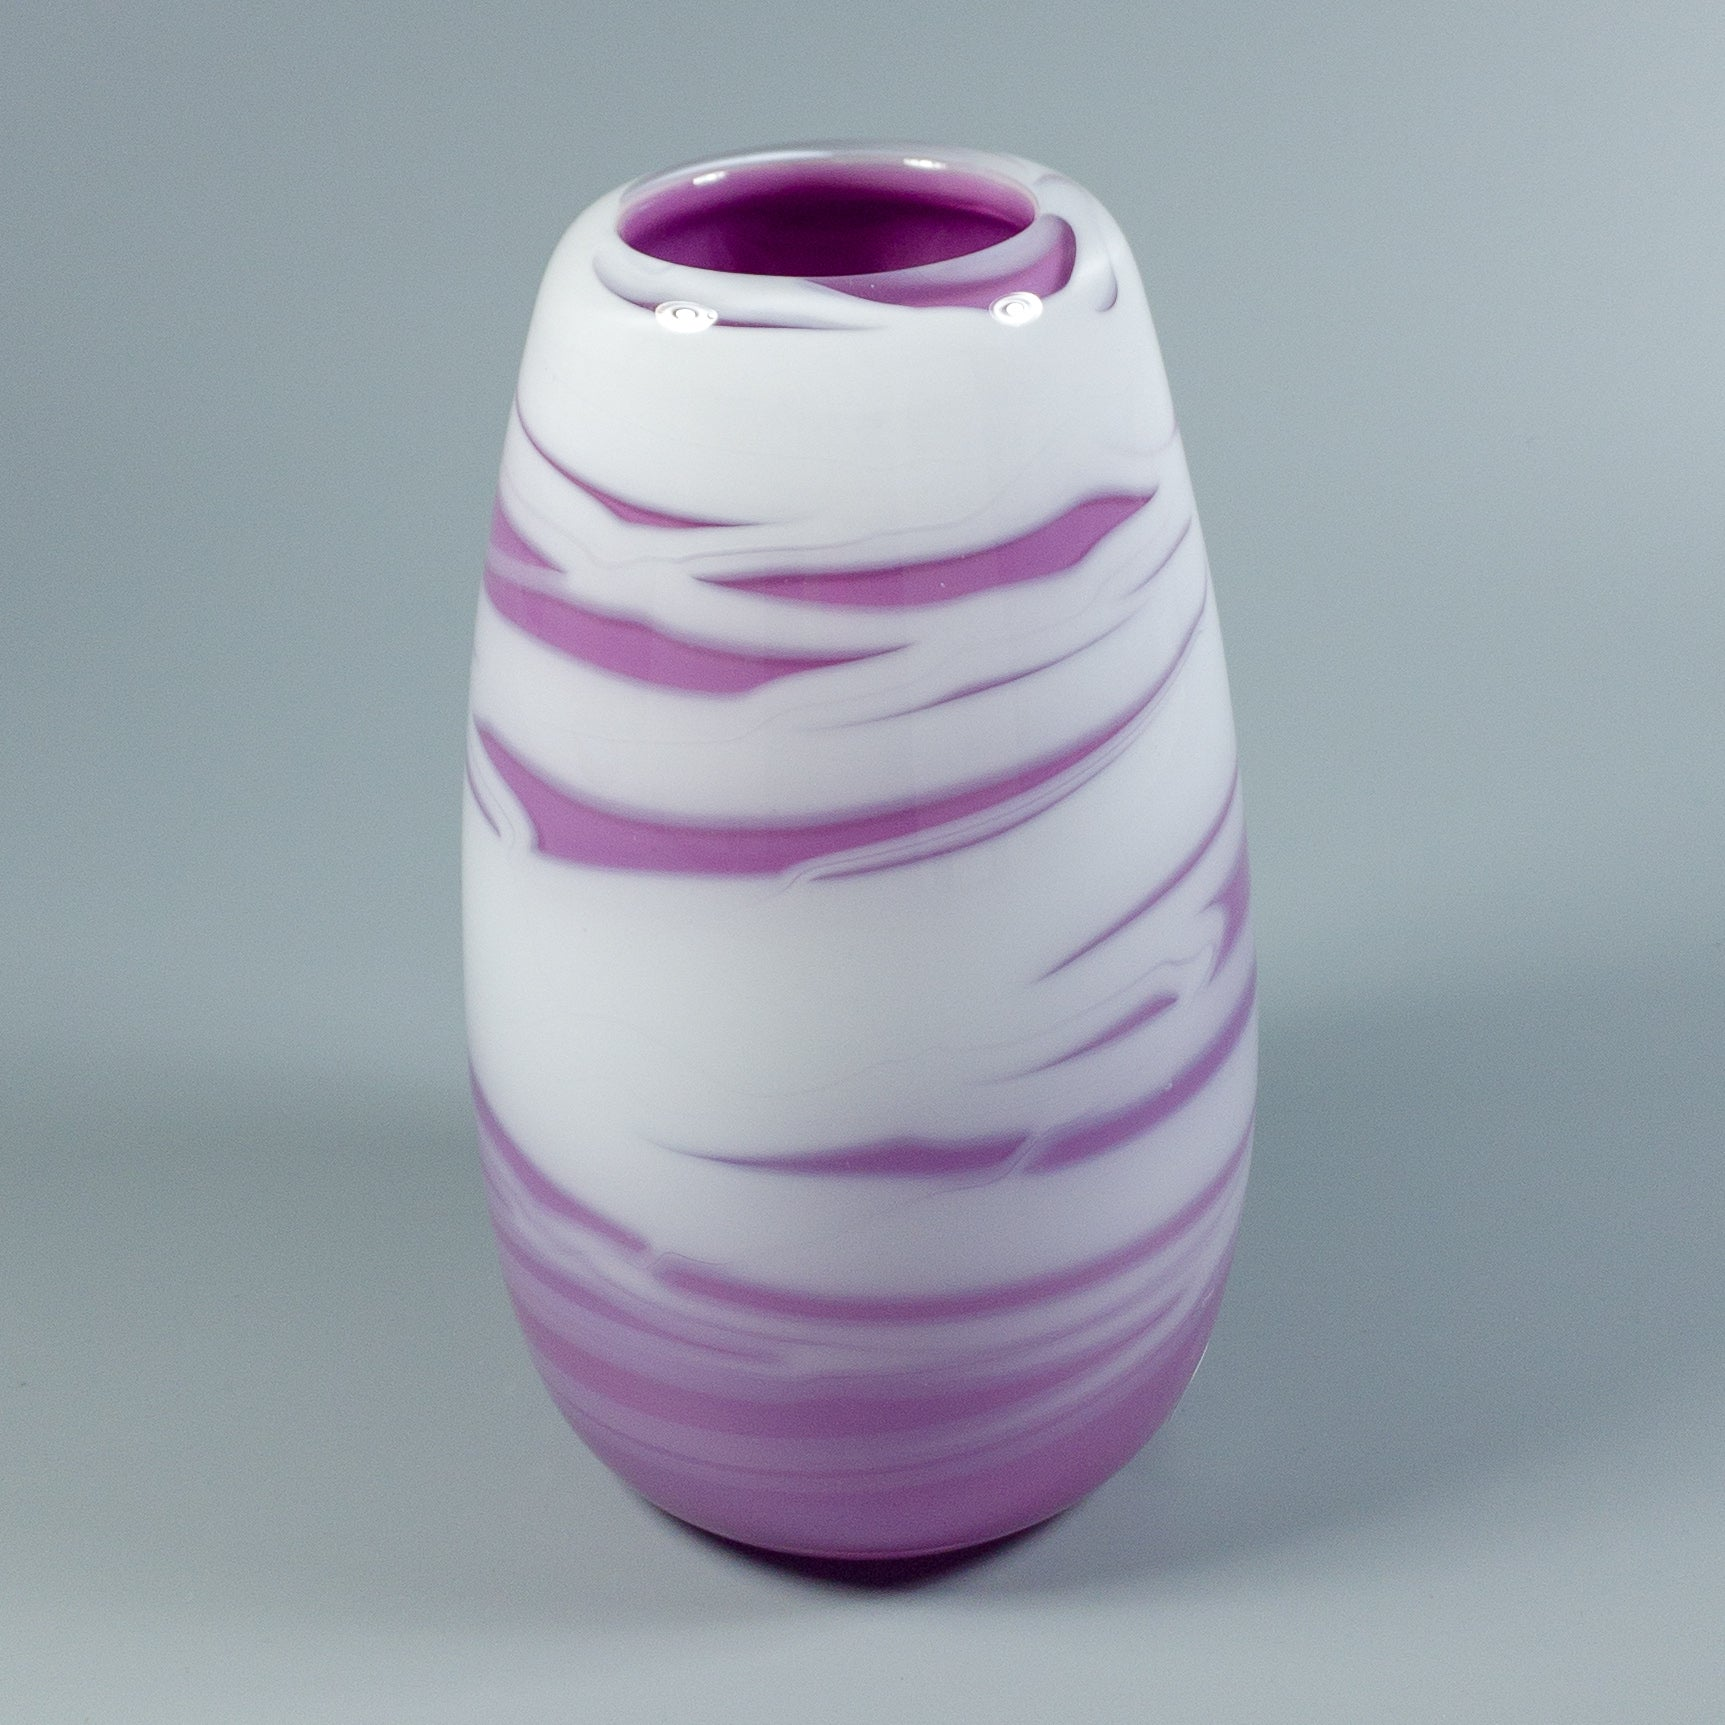 Connected Collection: Vases